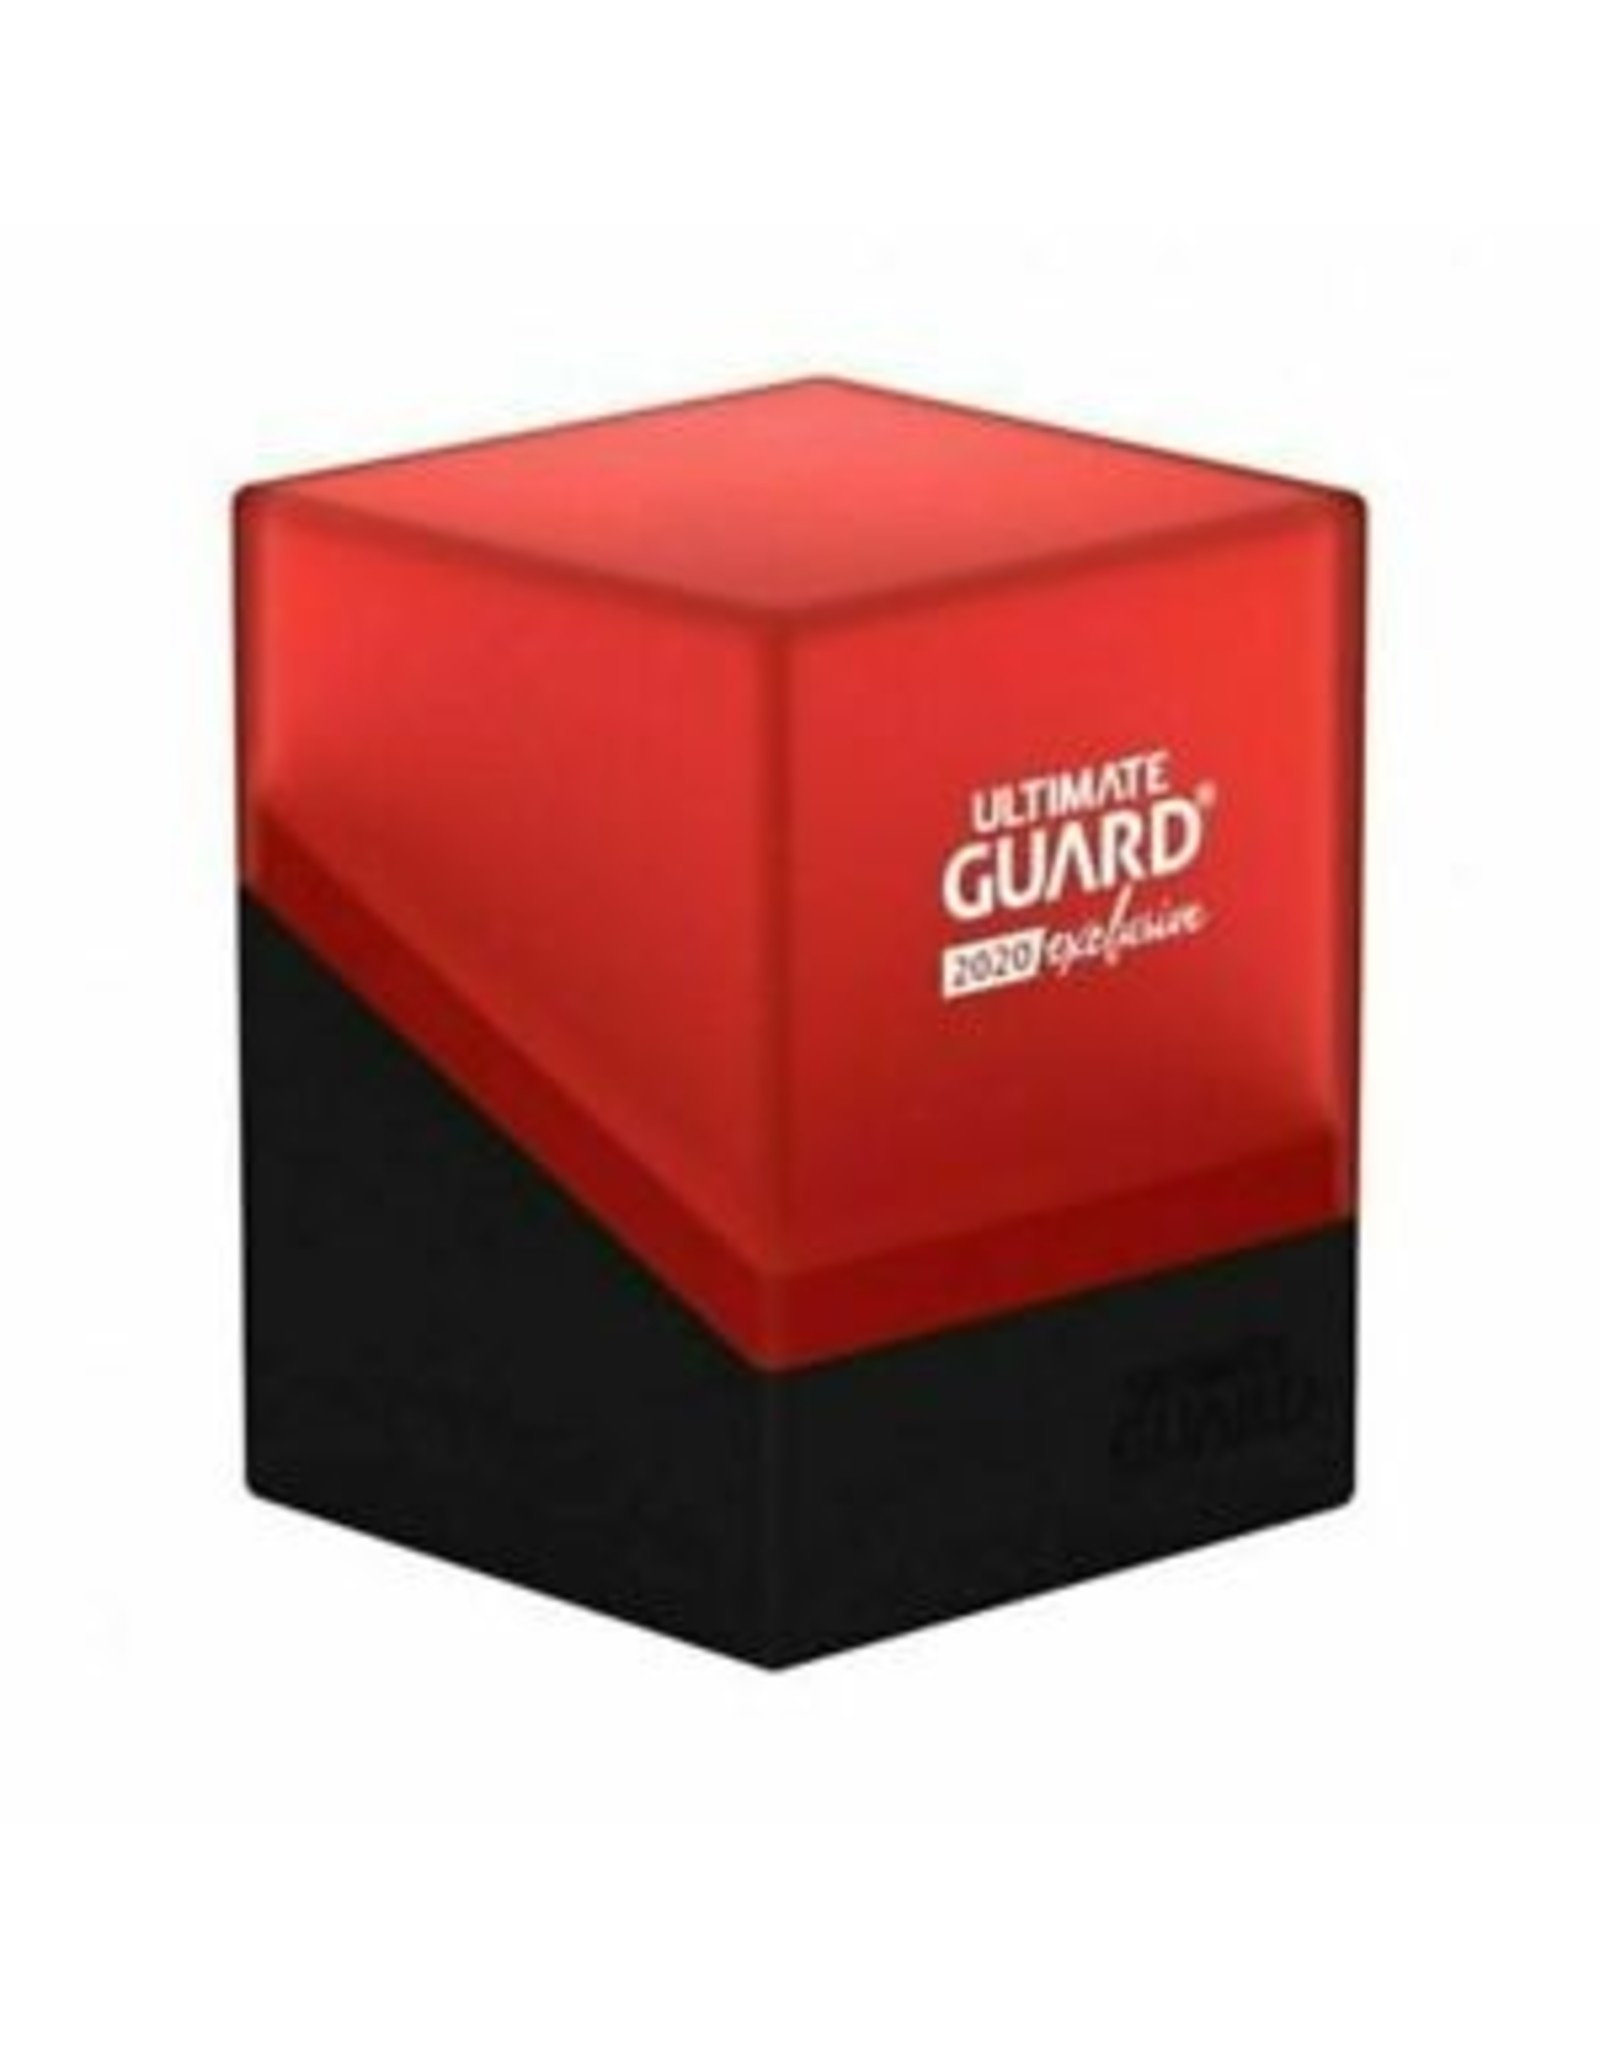 Ultimate Guard Boulder 2020 Exclusive 100 CT Red/Black